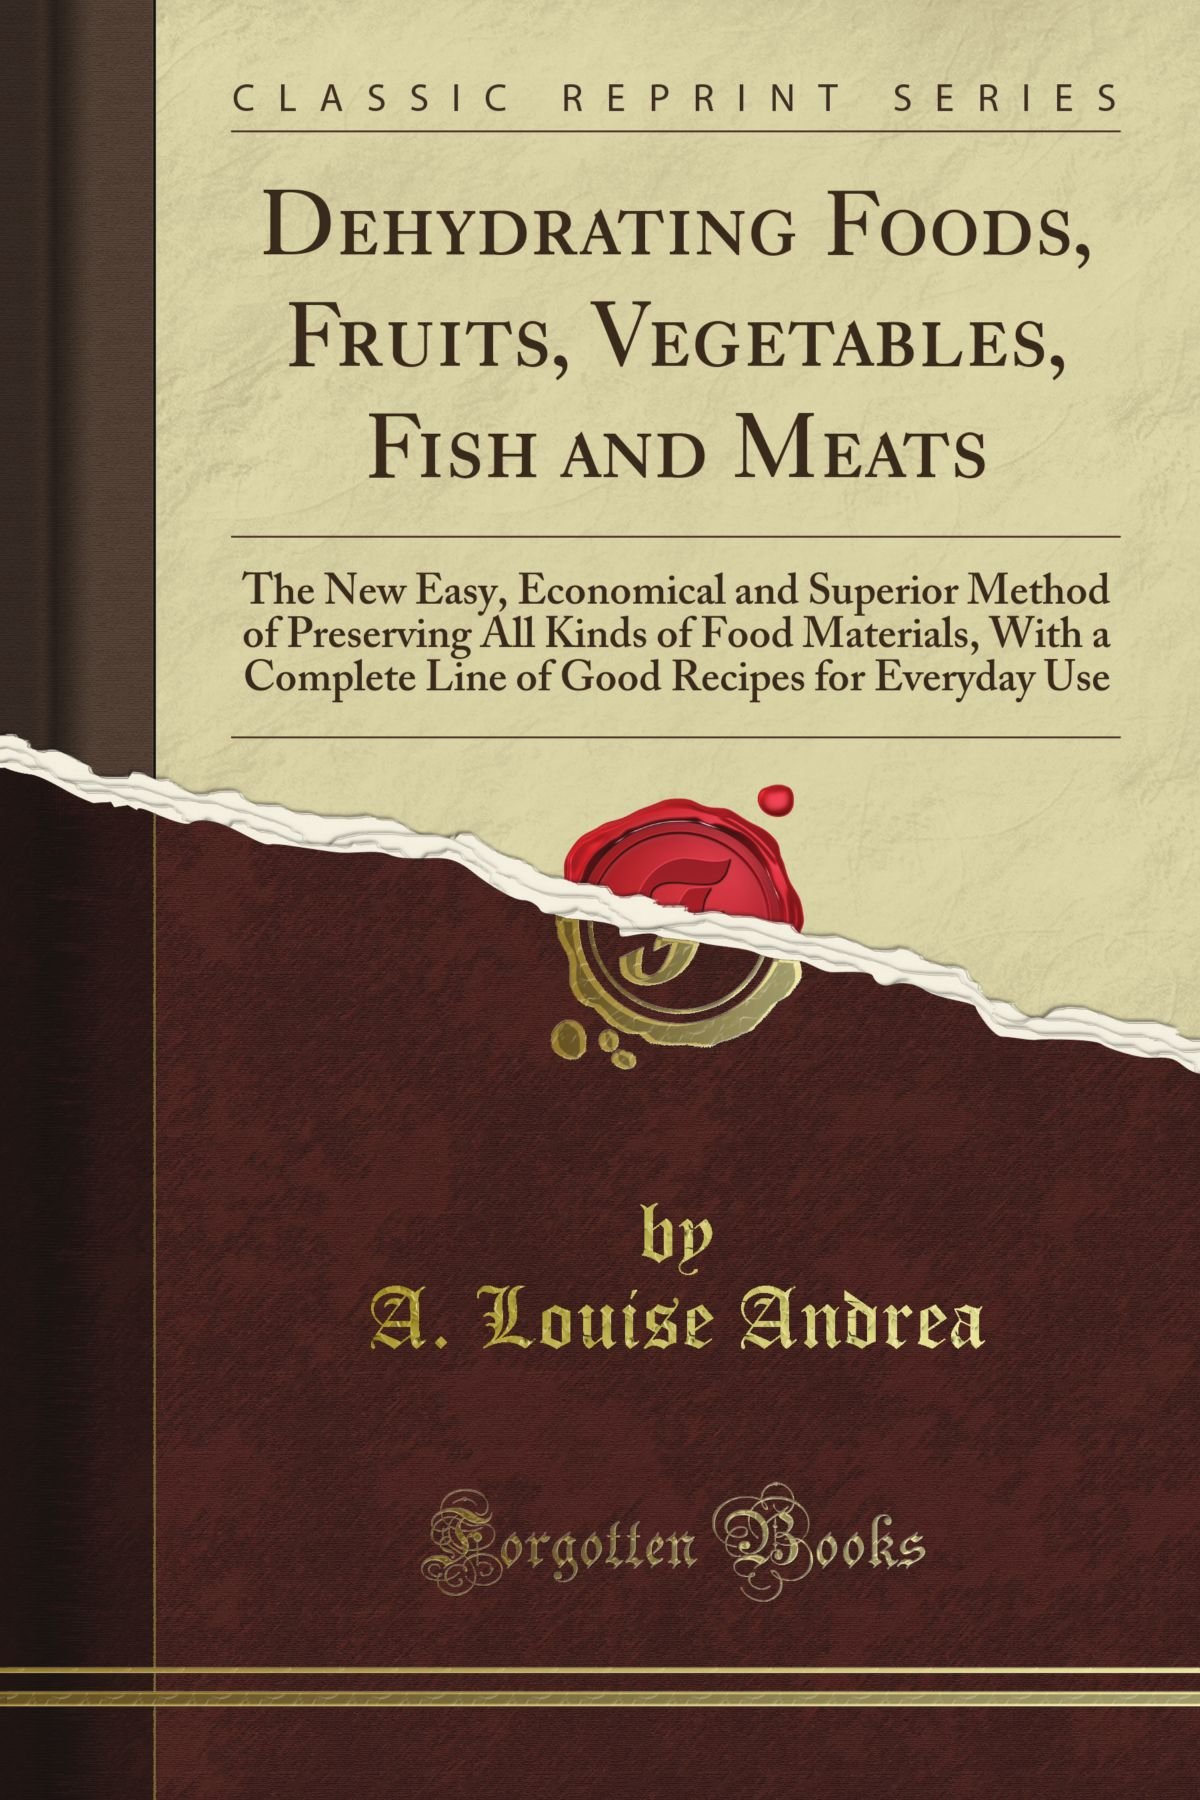 Download Dehydrating Foods, Fruits, Vegetables, Fish and Meats: The New Easy, Economical and Superior Method of Preserving All Kinds of Food Materials, With a ... Recipes for Everyday Use (Classic Reprint) pdf